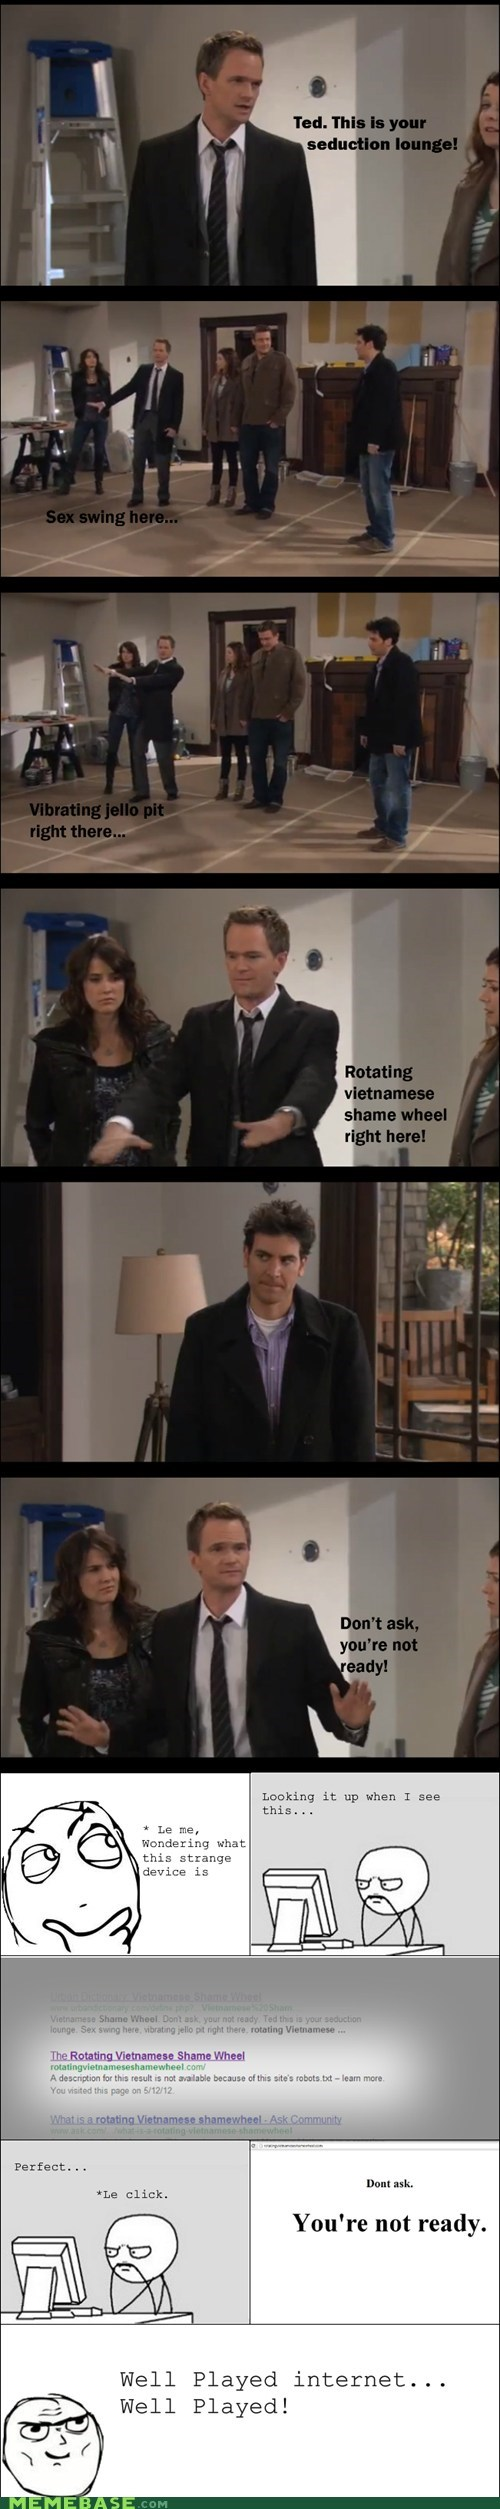 computer soon how i met your mother well played barney TV seduction - 6848623104